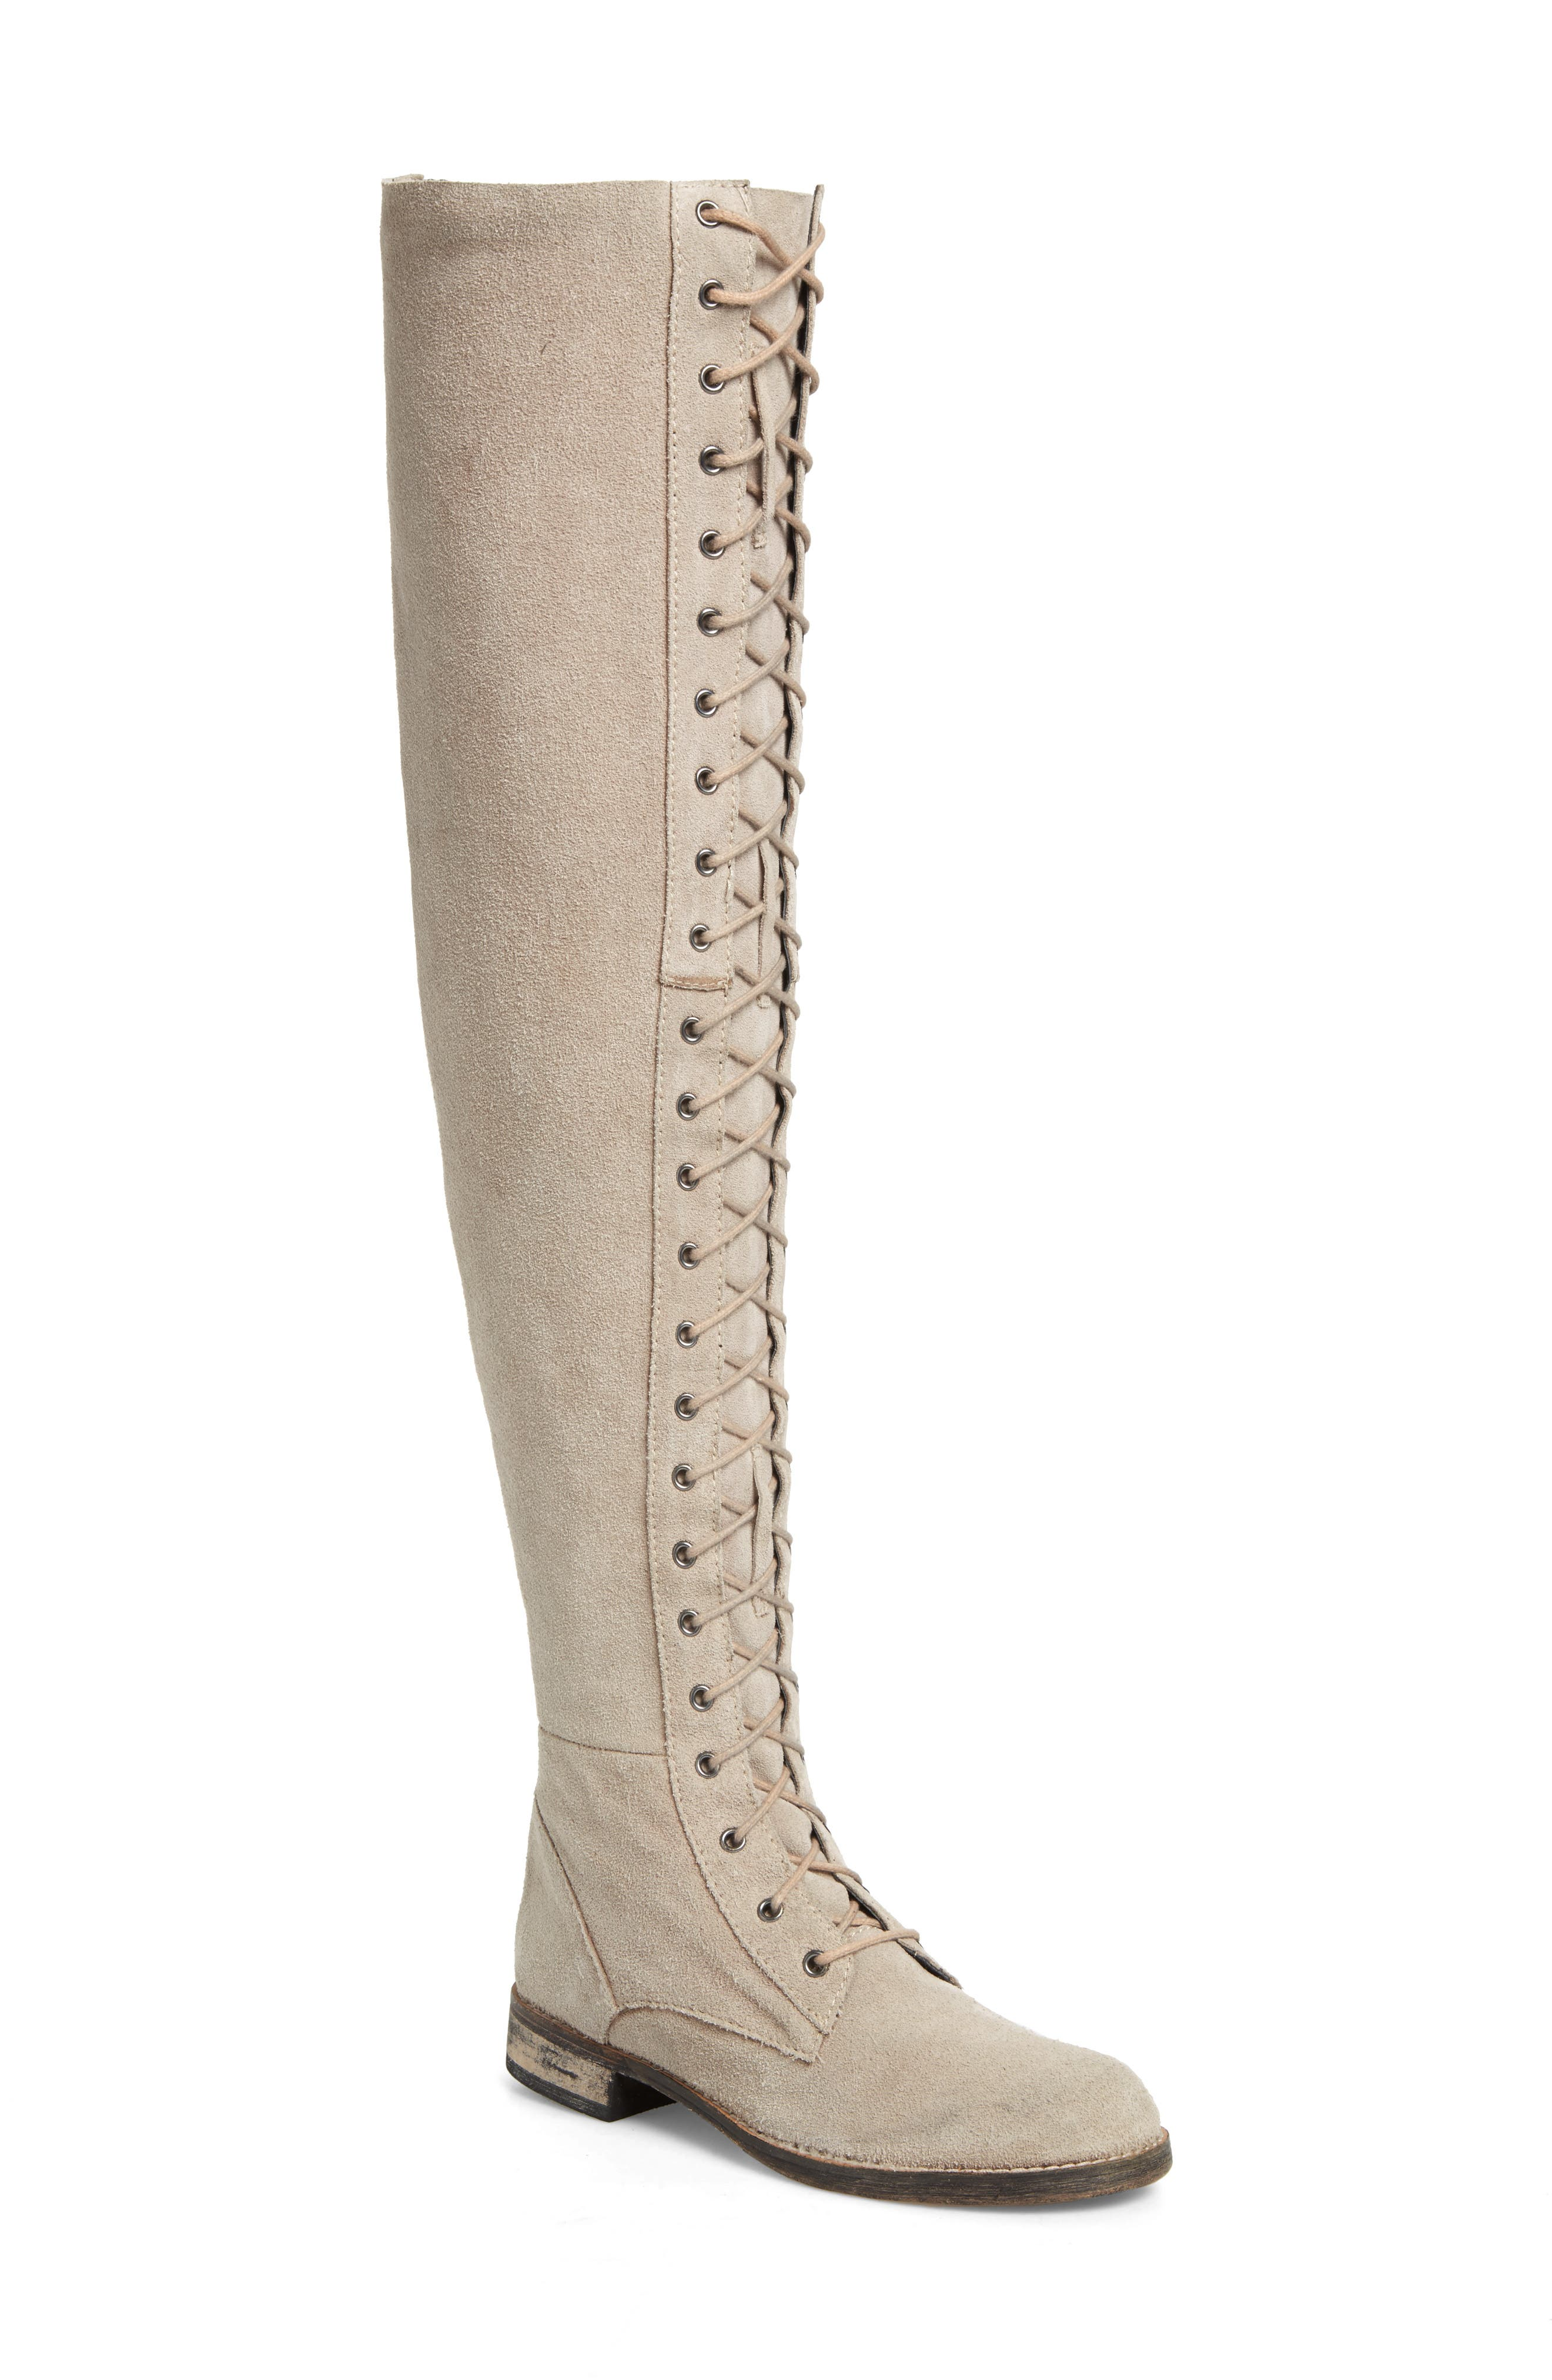 Alternate Image 1 Selected - Free People Tennessee Over the Knee Boot (Women)